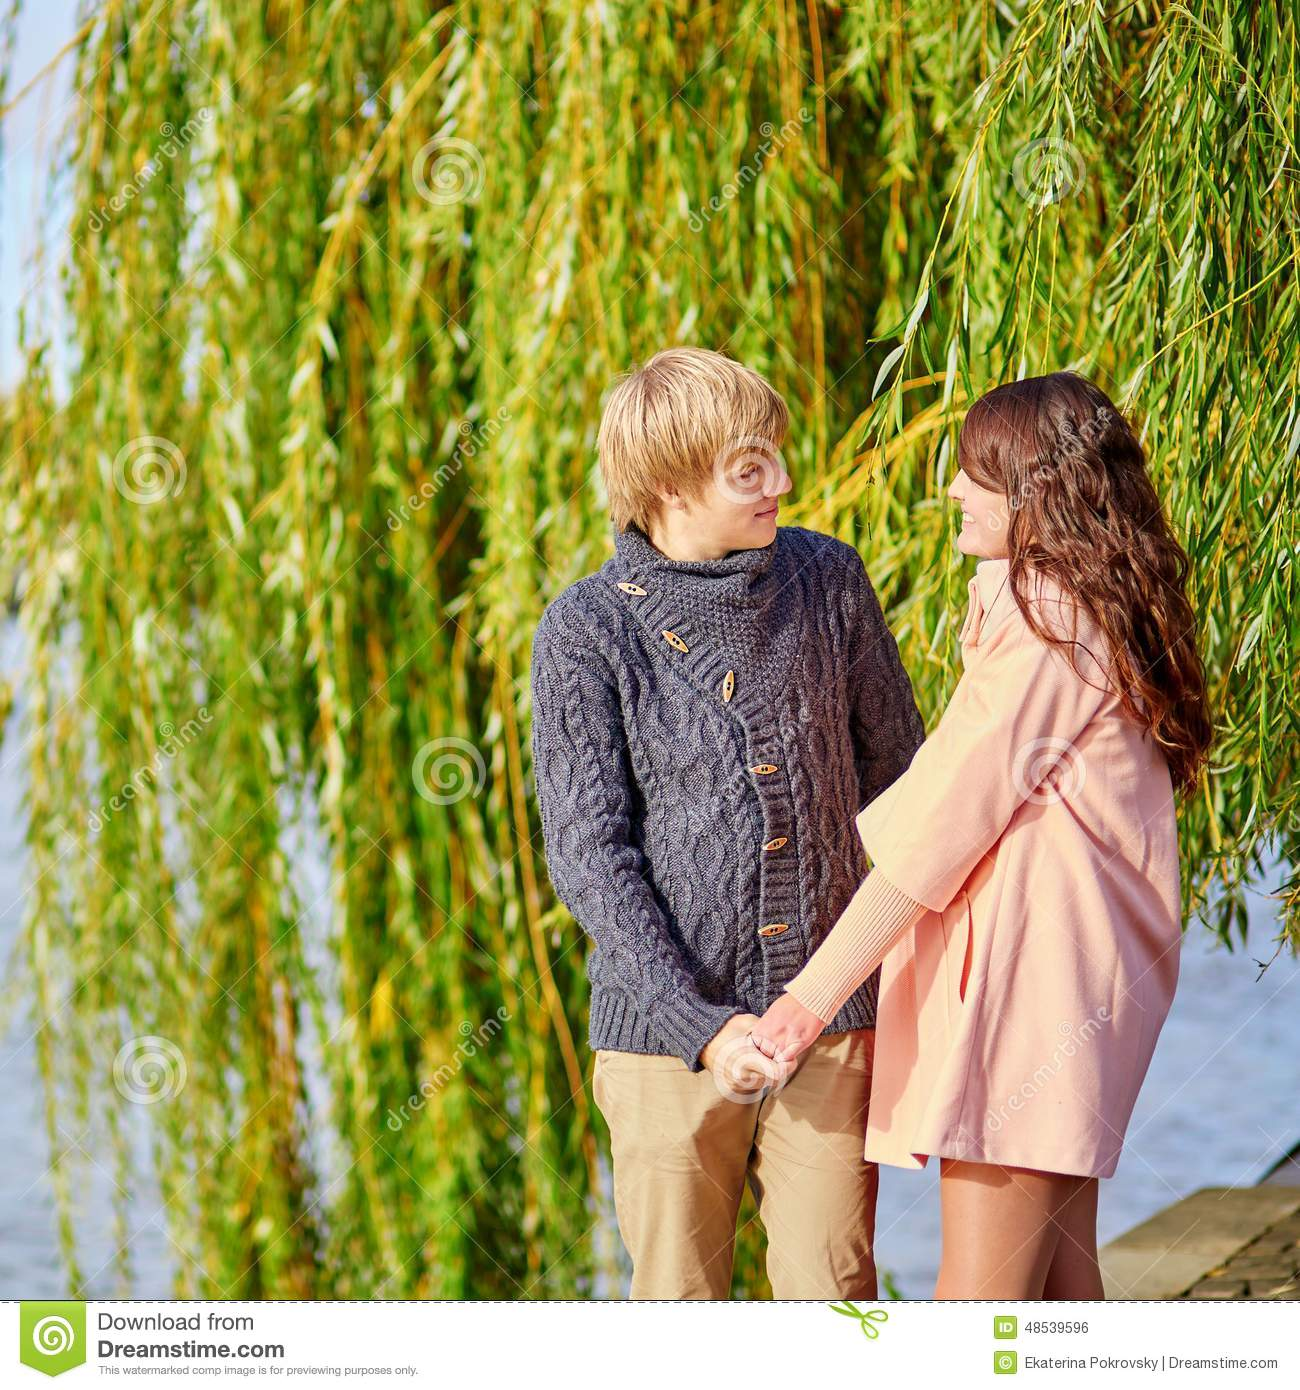 dating services in san diego ca, expat dating in costa rica,